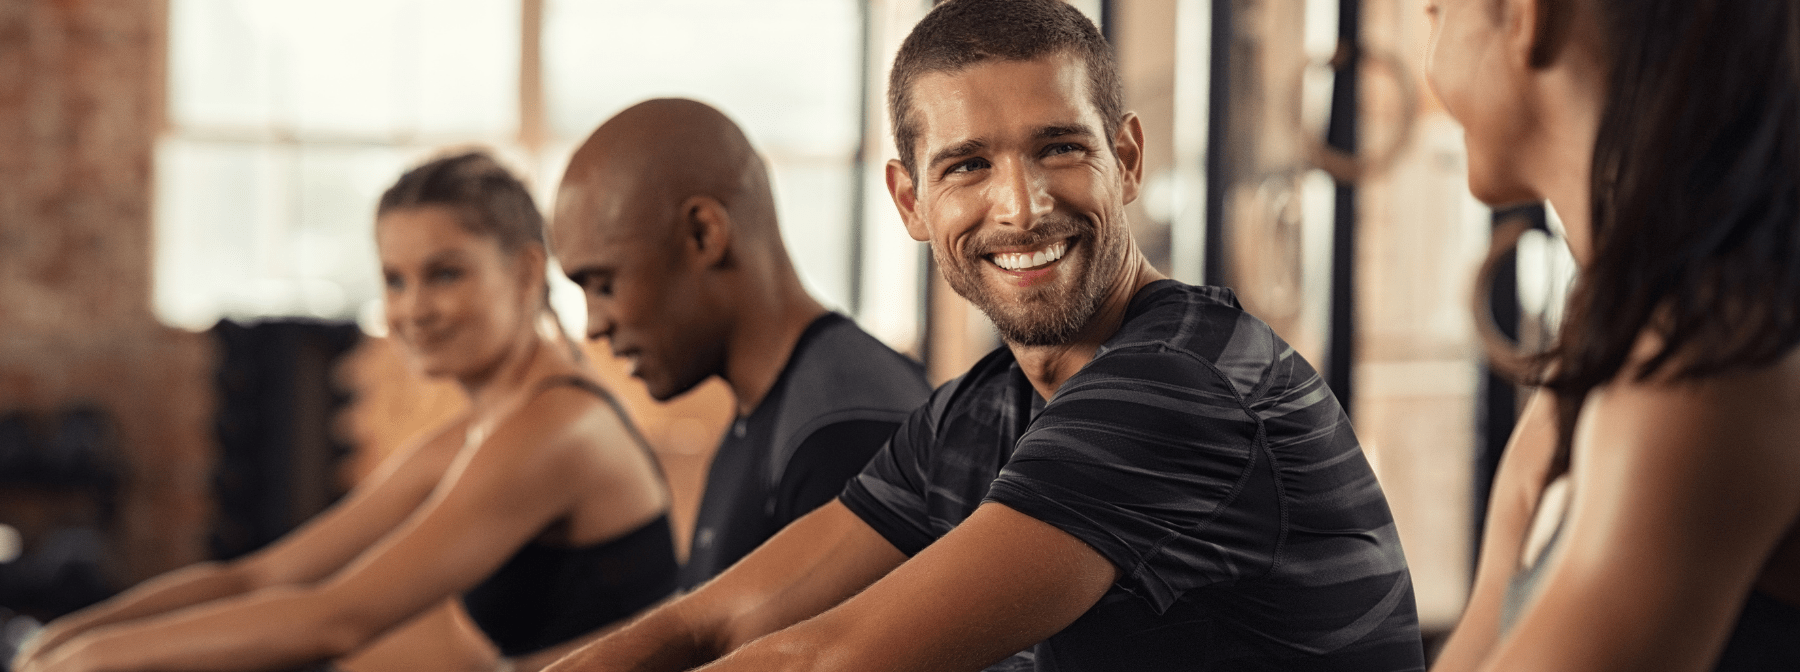 Why Happiness Leads To Weight Loss